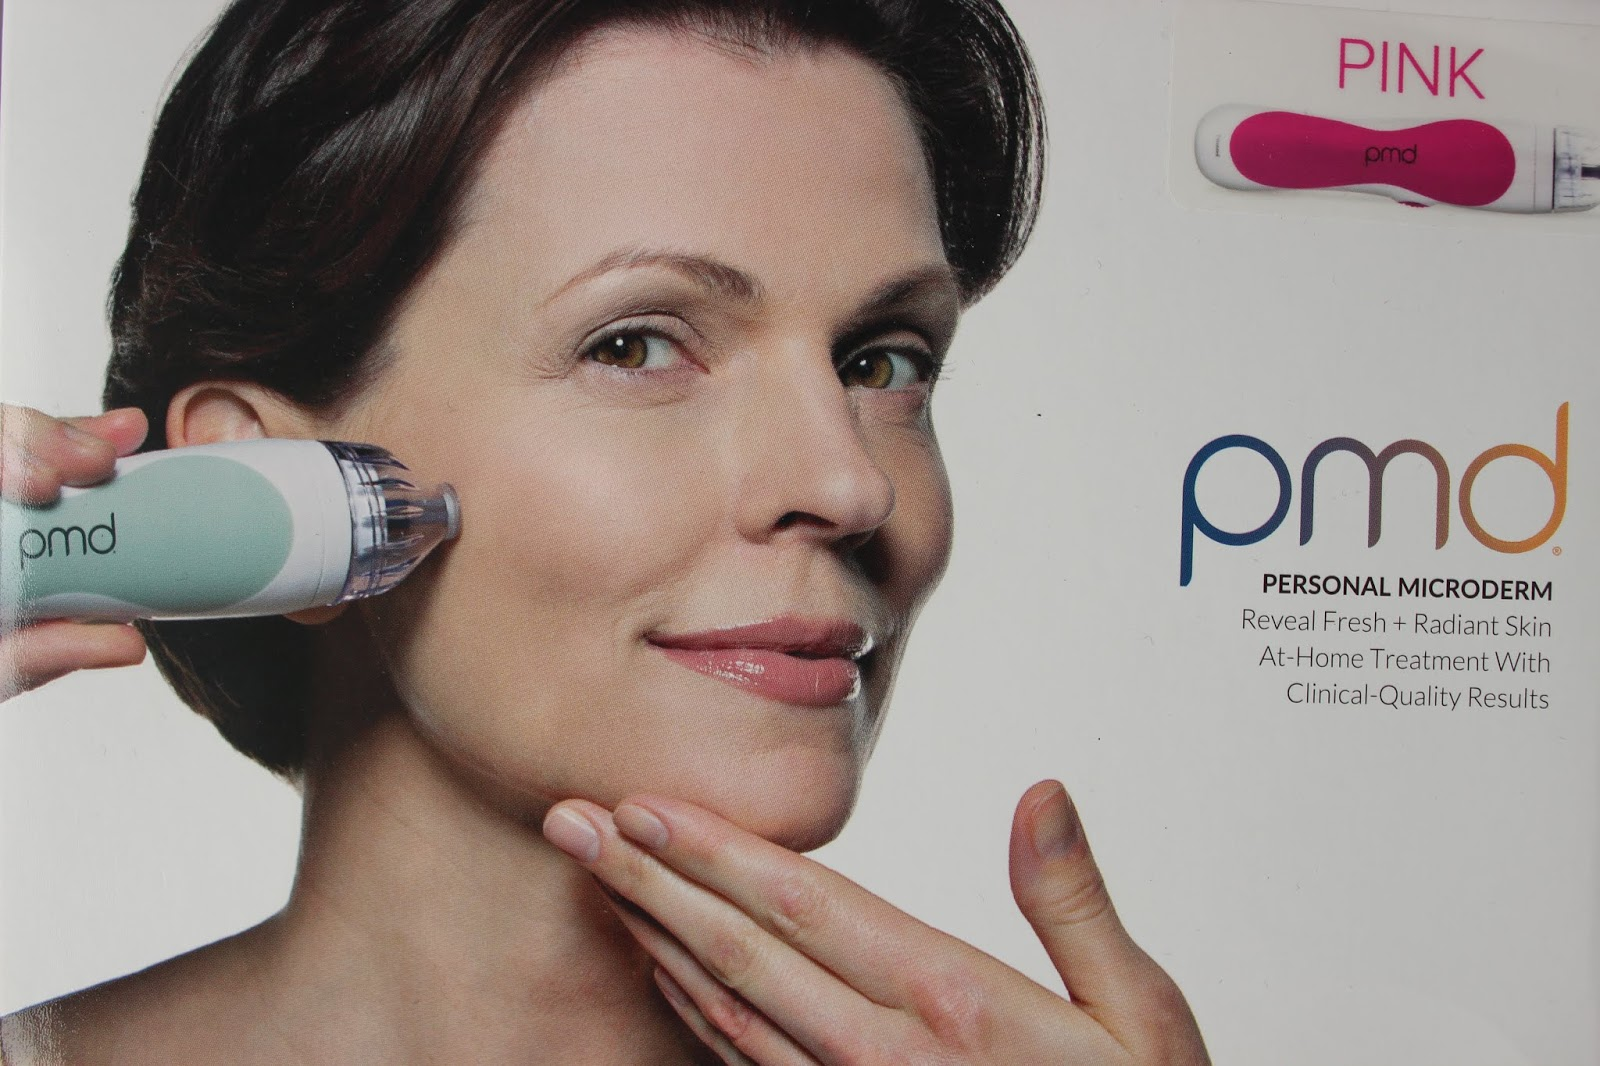 PMD Personal Microderm Packaging